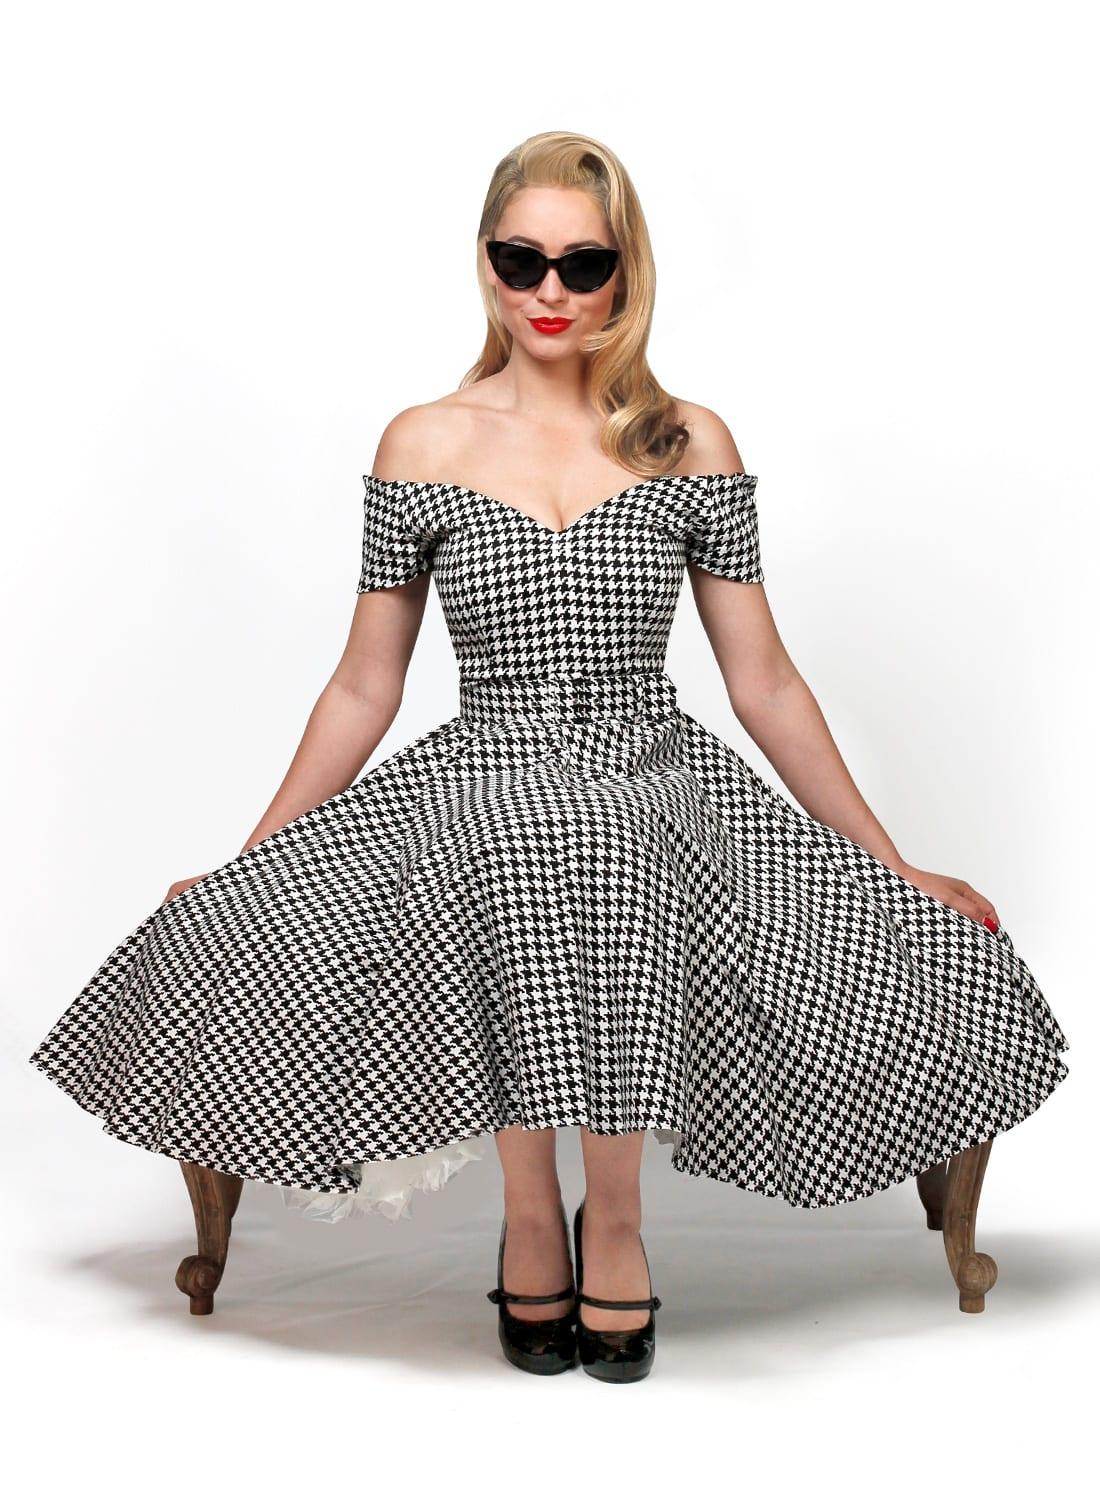 US $55.19 31% OFF|30 summer women vintage 50\'s houndstooth circle swing  dress in black white plus size dresses rockabilly vestidos pin up jurken-in  ...